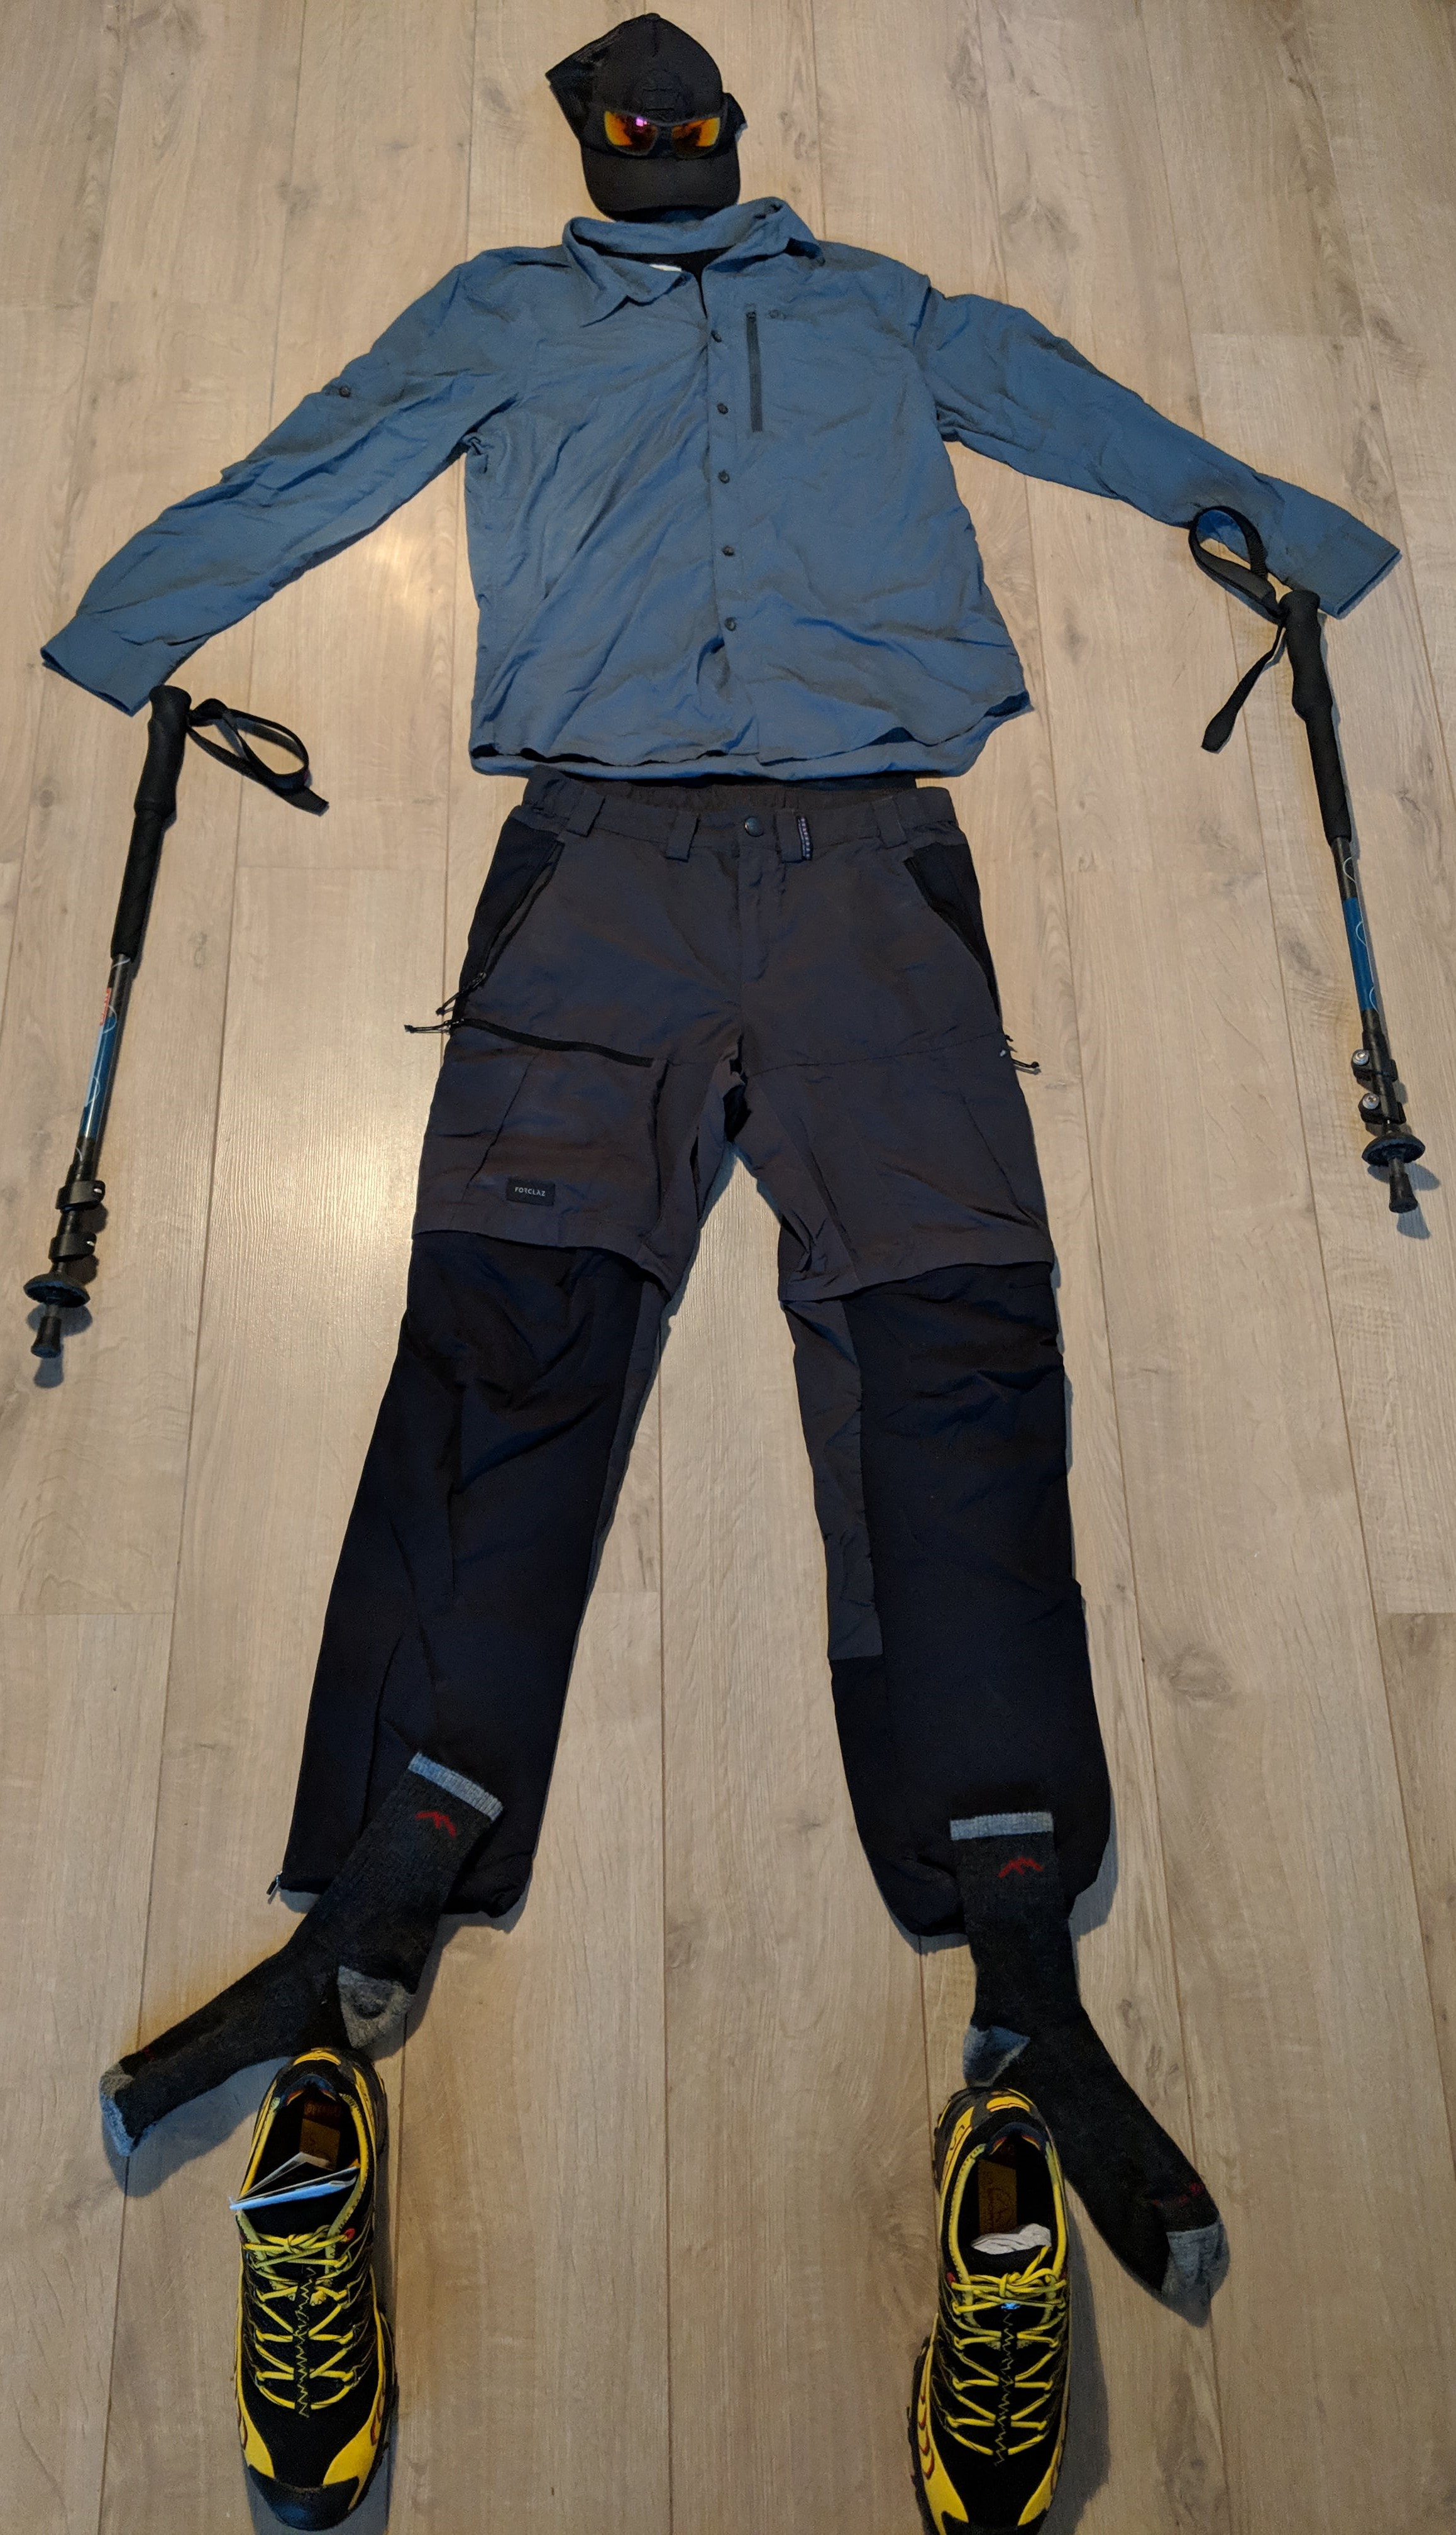 A picture illustrating the lightweight hiking gear I'll have on me during my Pacific Crest Trail hike.